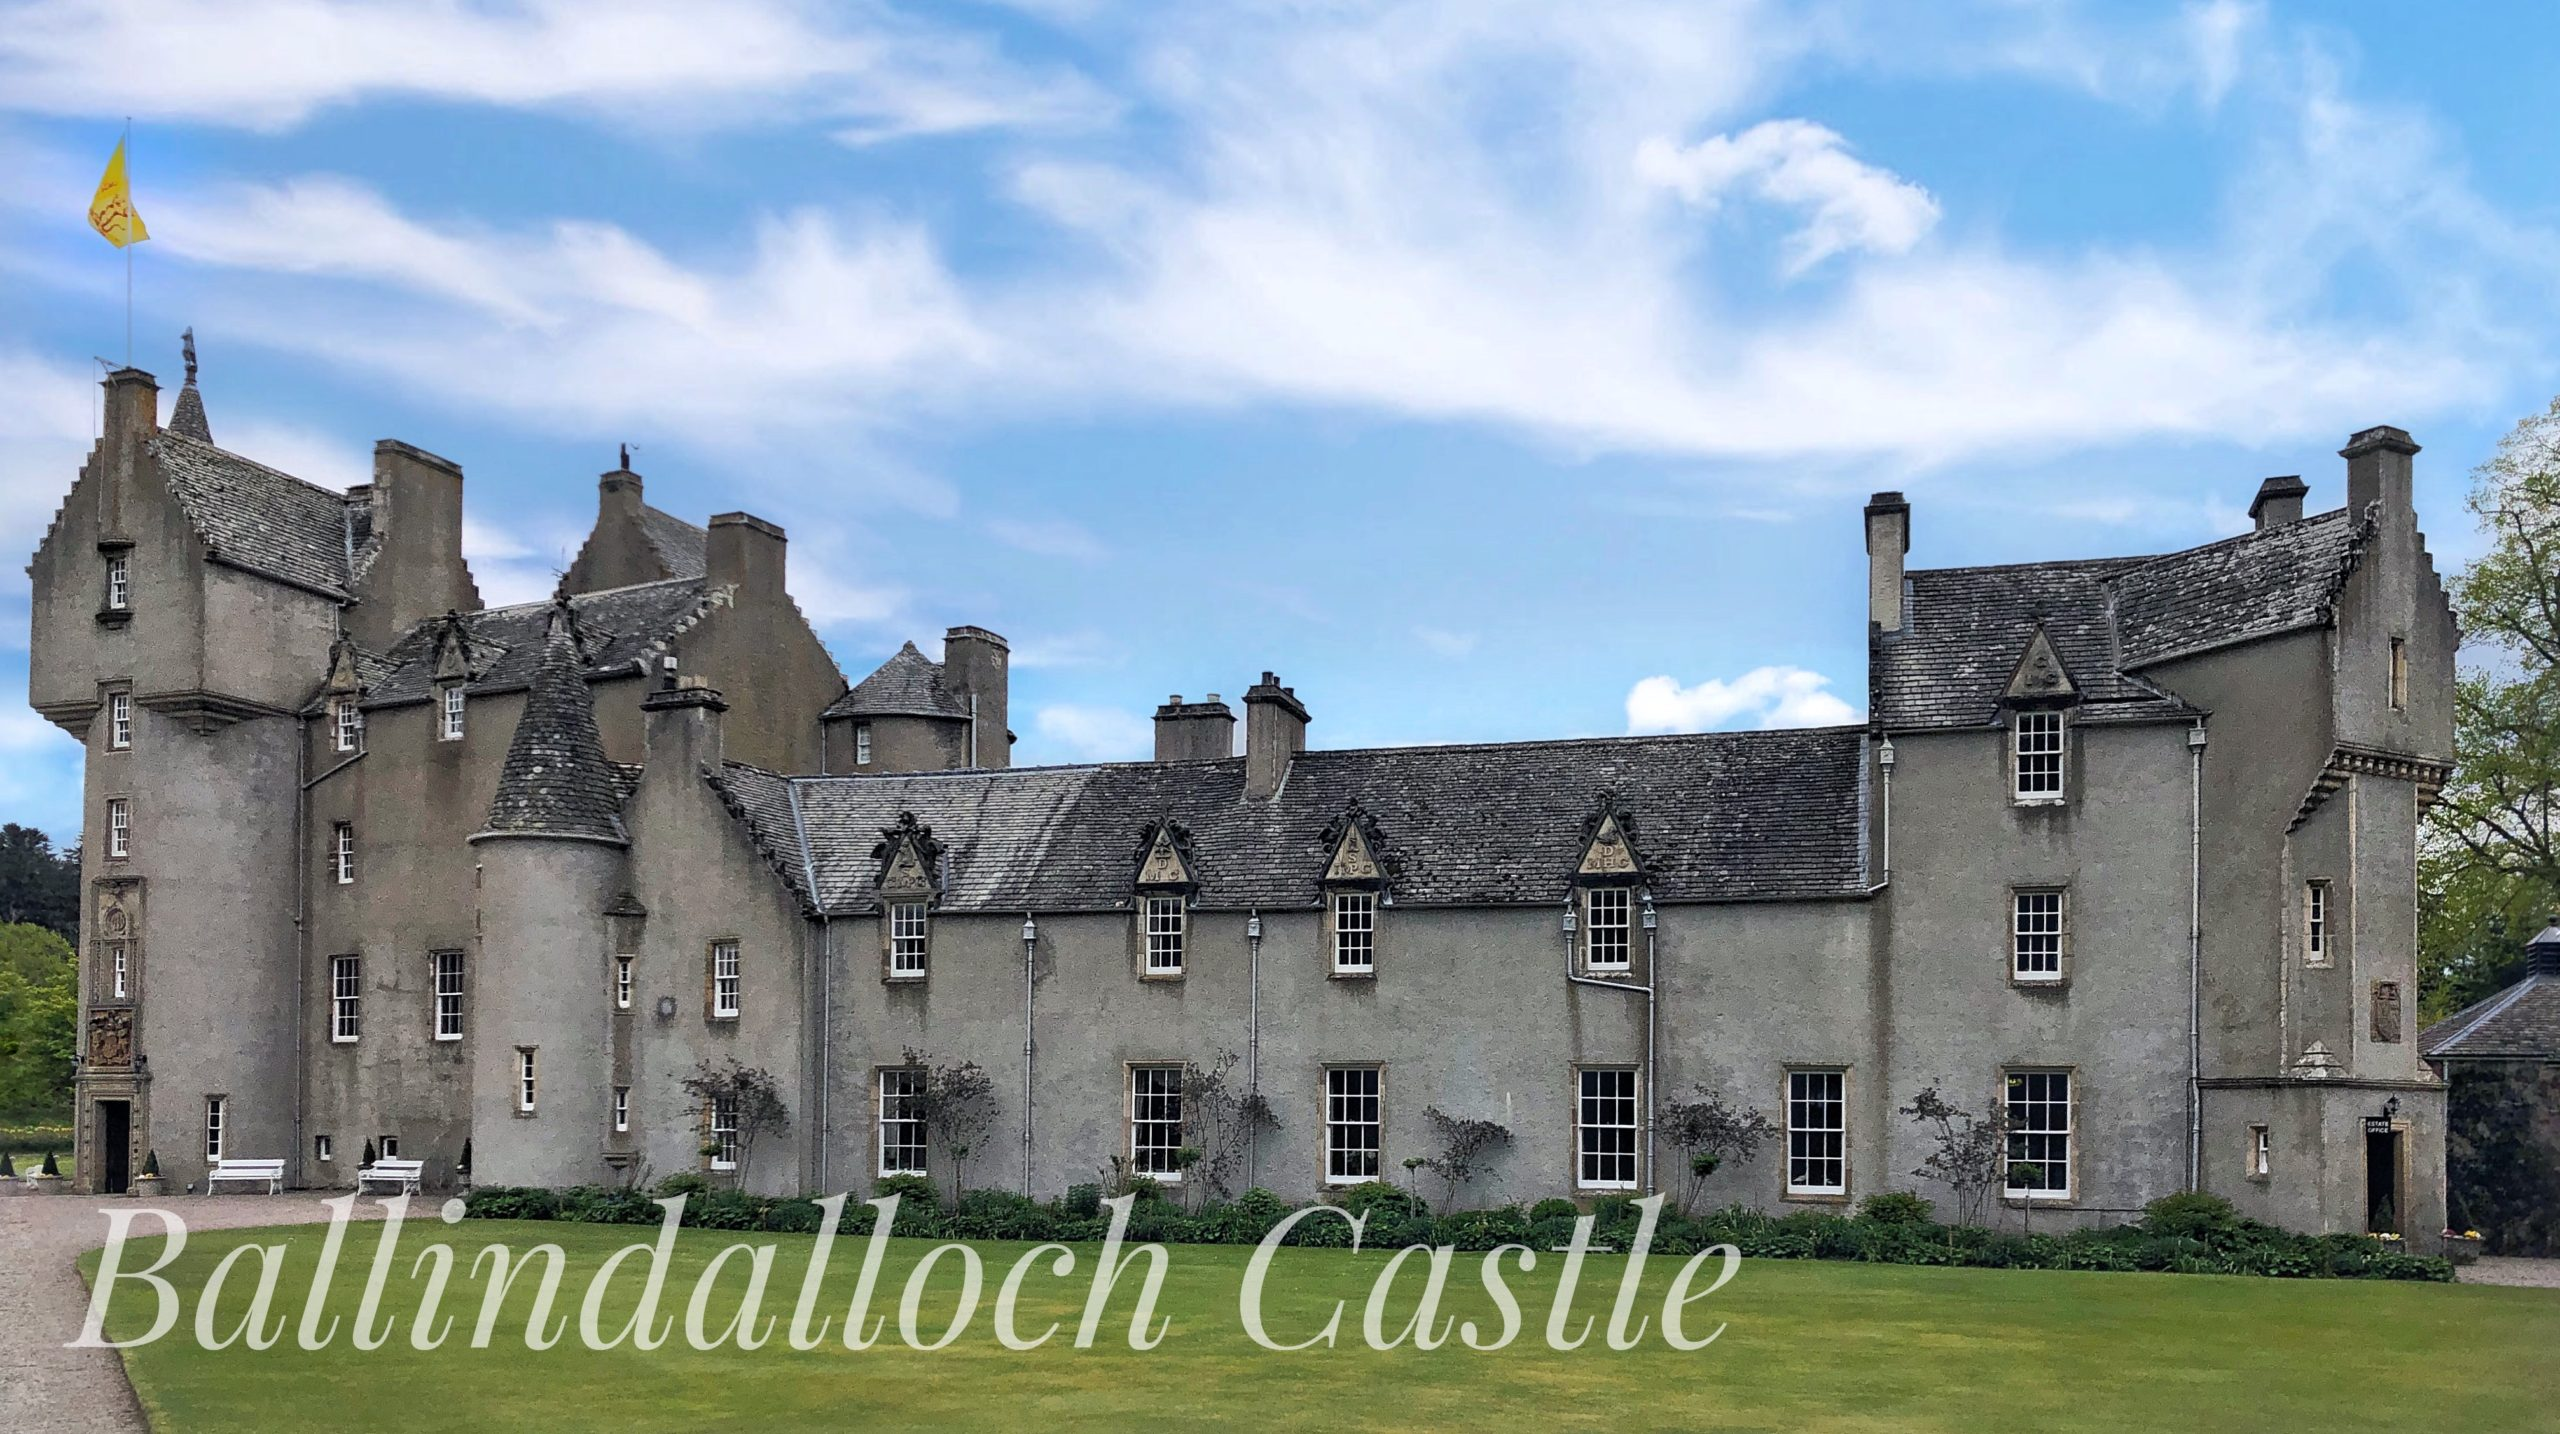 Ballindalloch Castle which is 8 miles from Aberlour Town in Banffshire Scotland